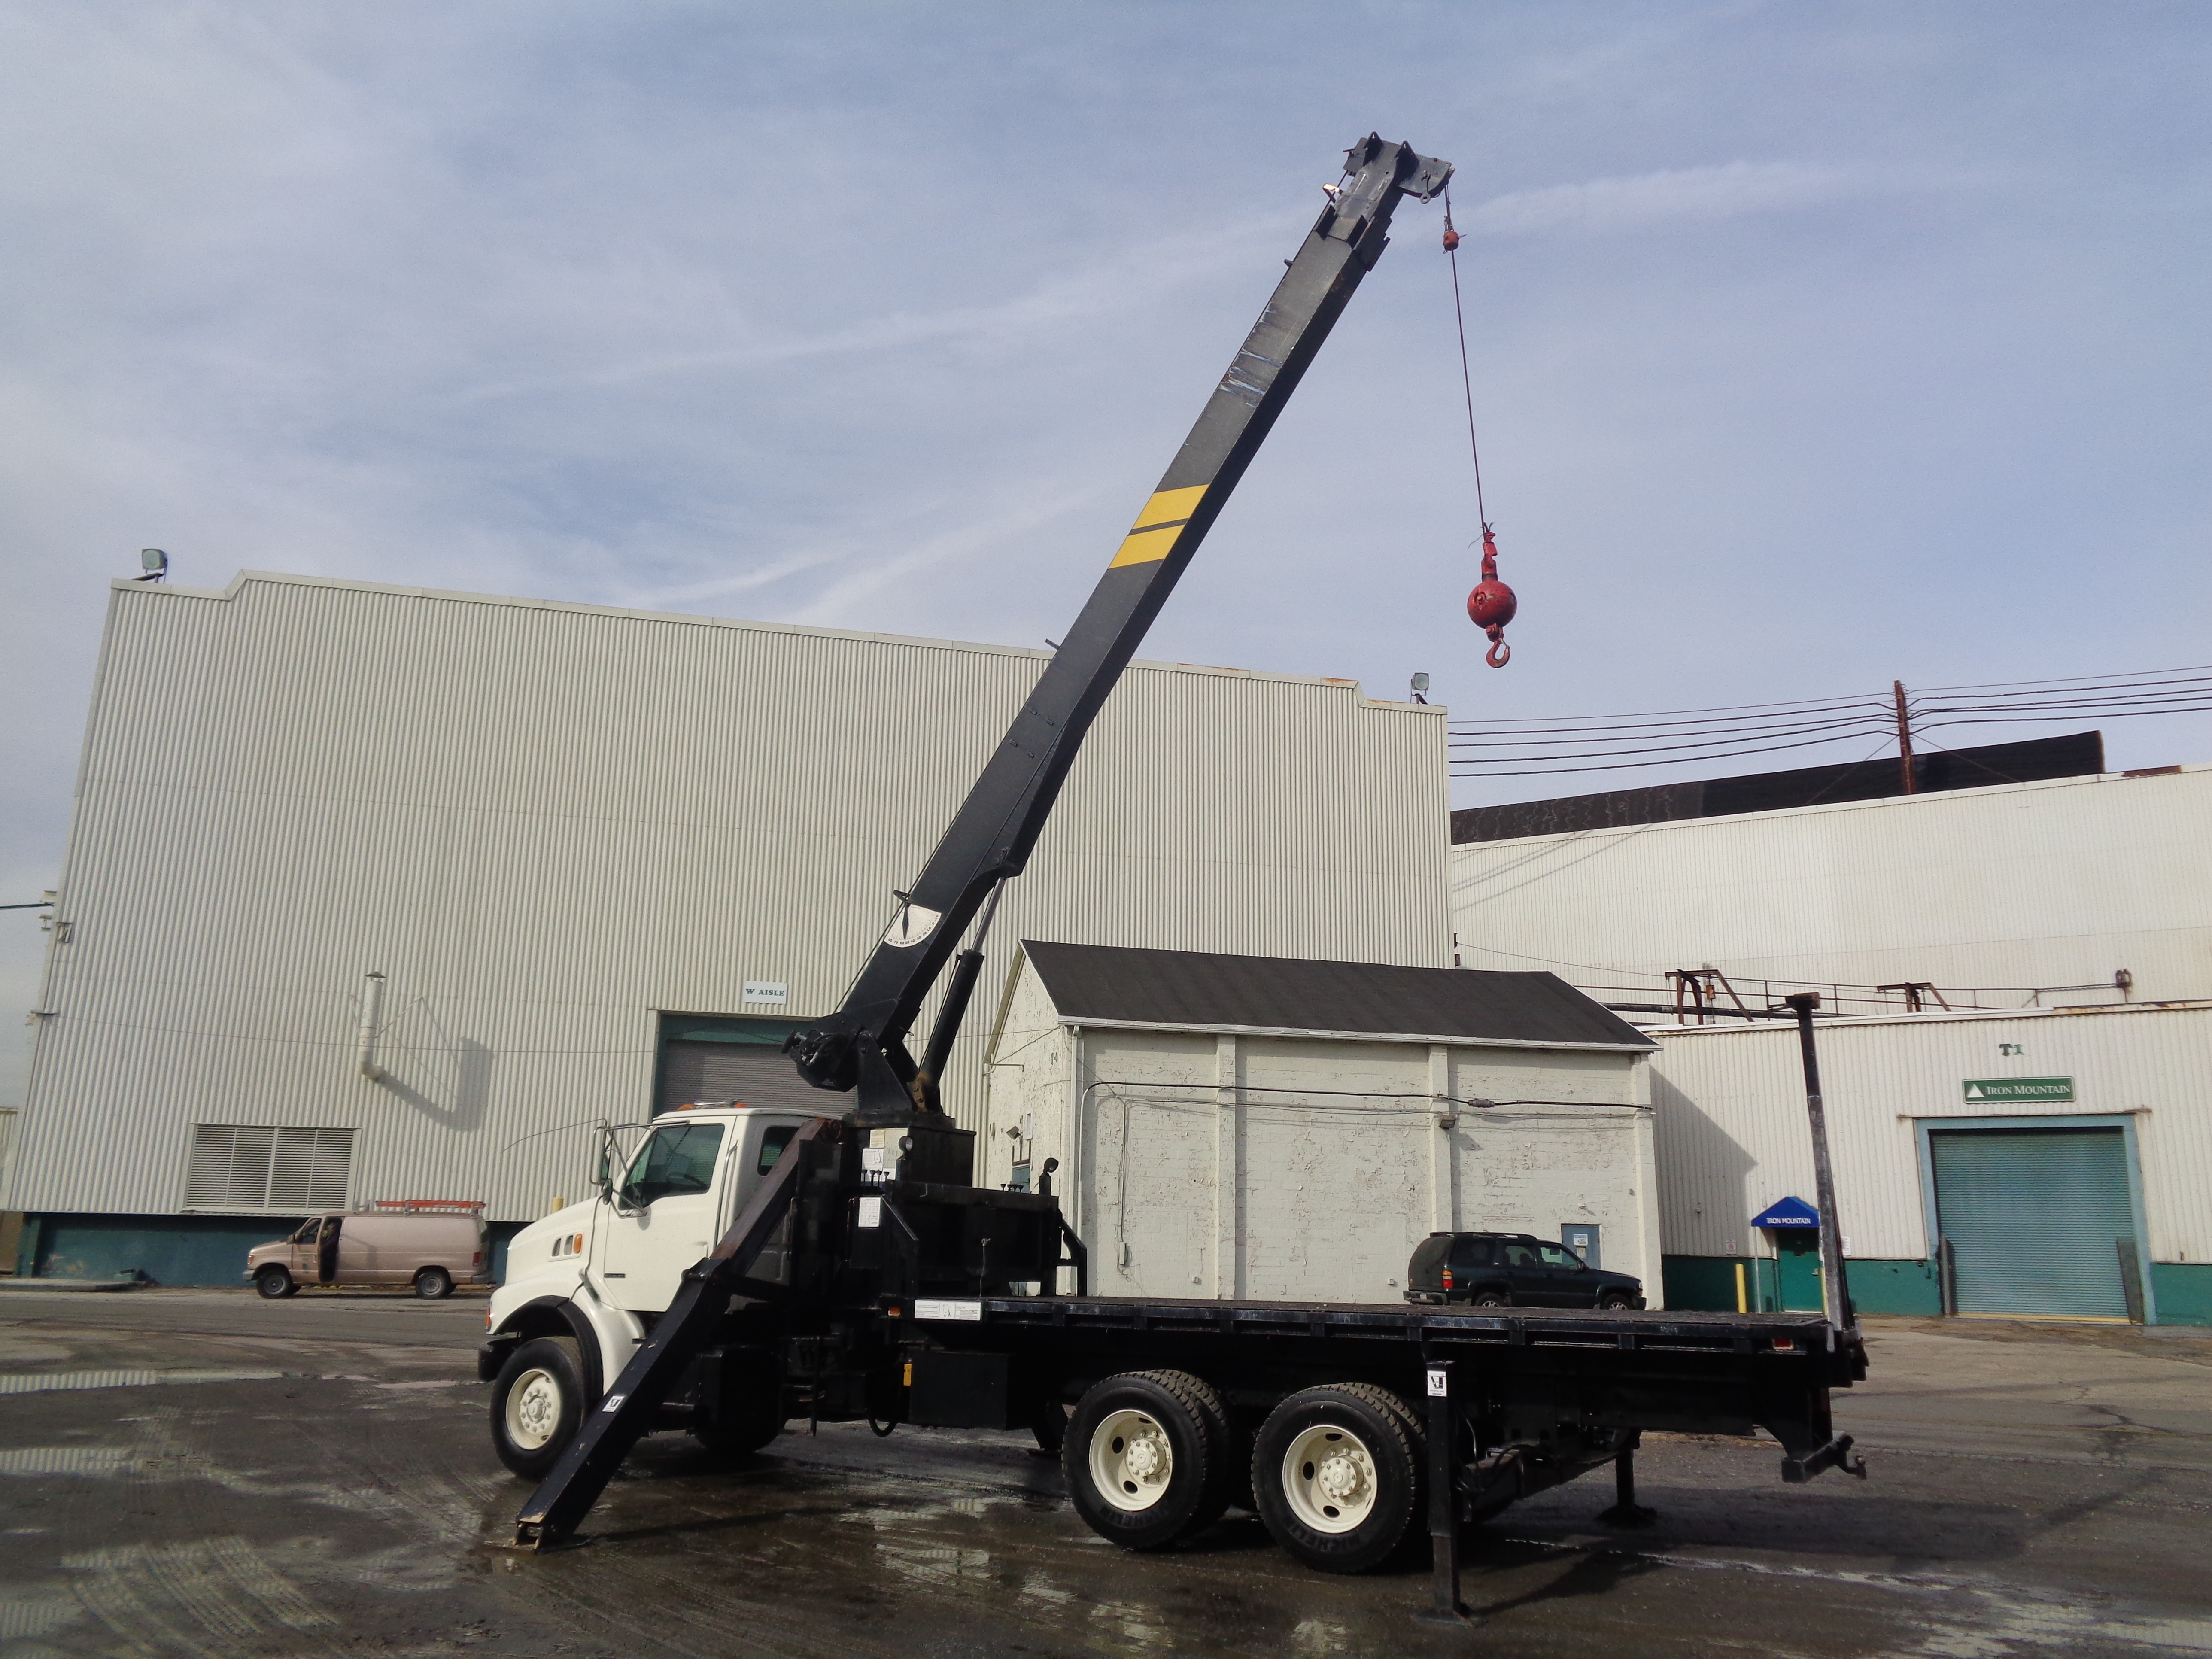 Lot 36 - Sterling Boom Truck Crane 16 Ton Capacity - 68ft Height